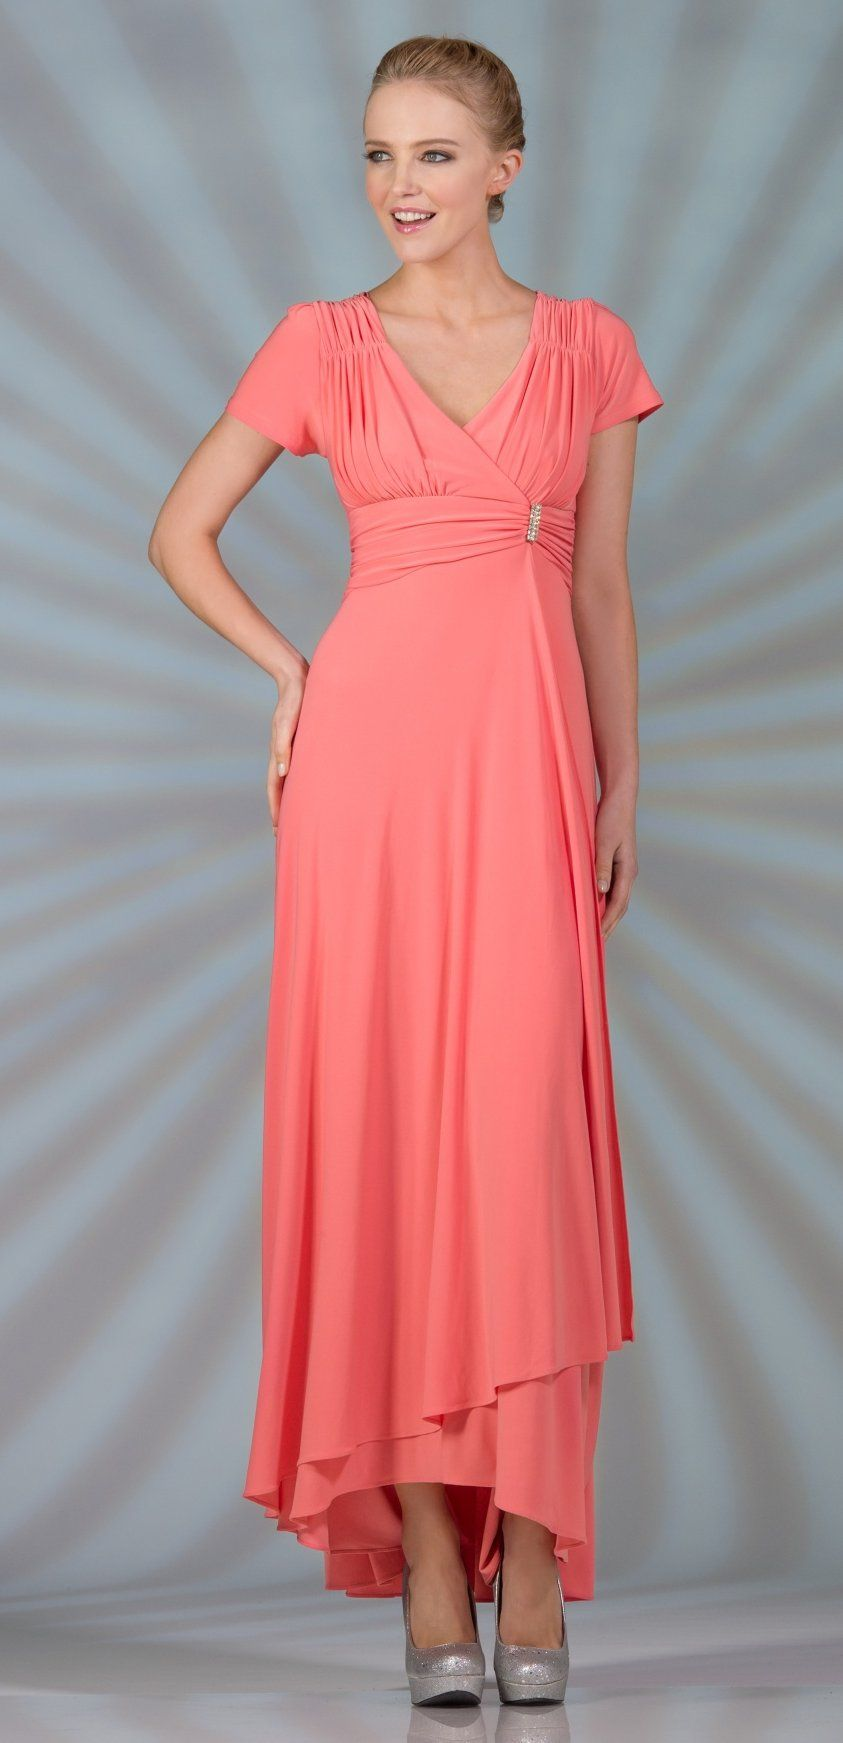 e40af3ab597 Tea Length Modest Coral Dress Short Sleeves V Neckline (6 Colors Available)